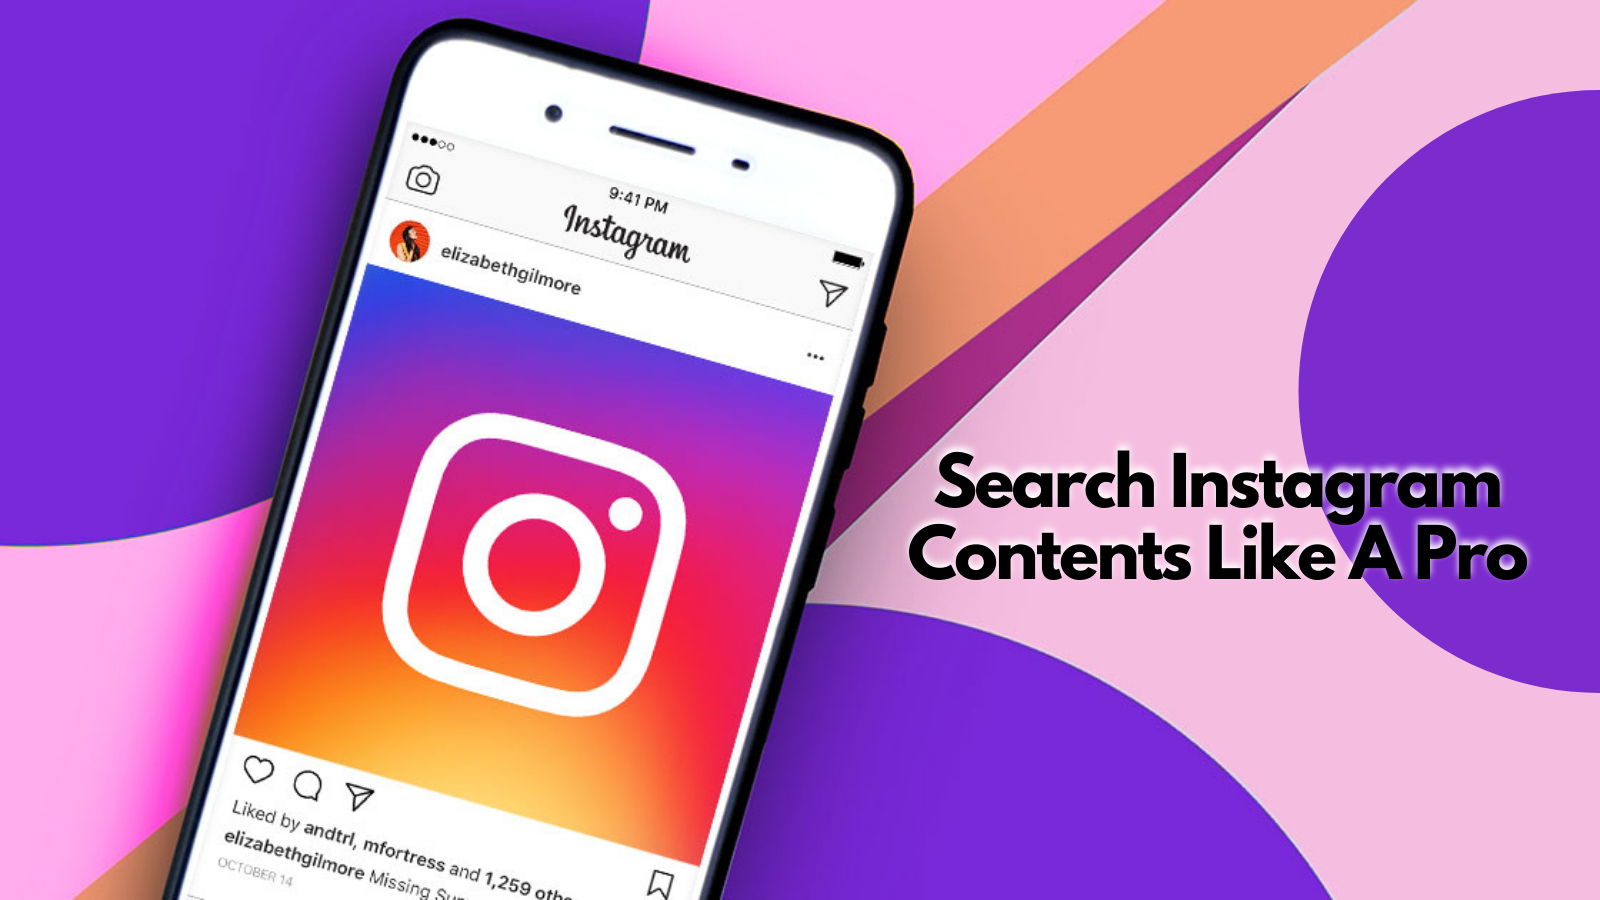 search-instagram-contents-like-a-pro